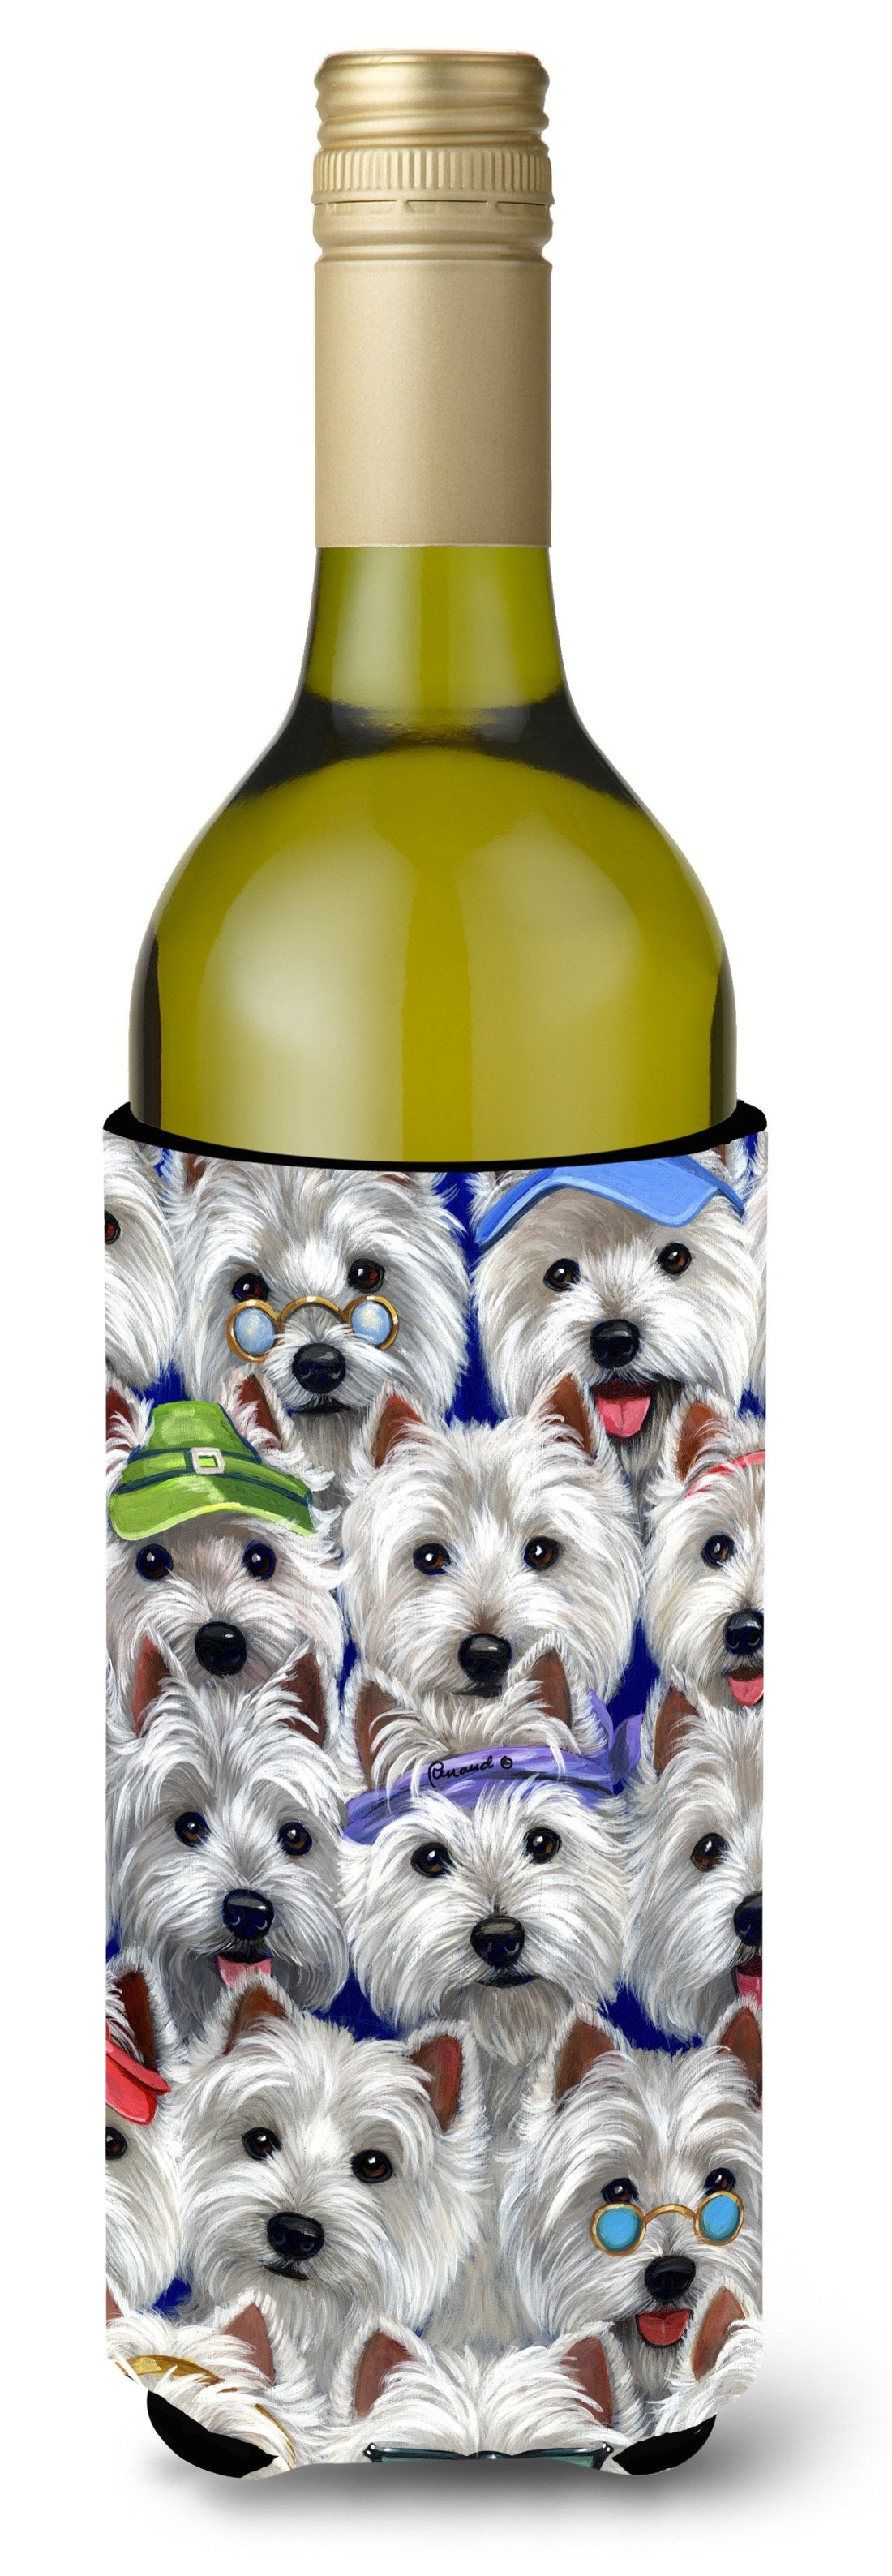 Westie Many Faces Wine Bottle Hugger PPP3217LITERK by Caroline's Treasures